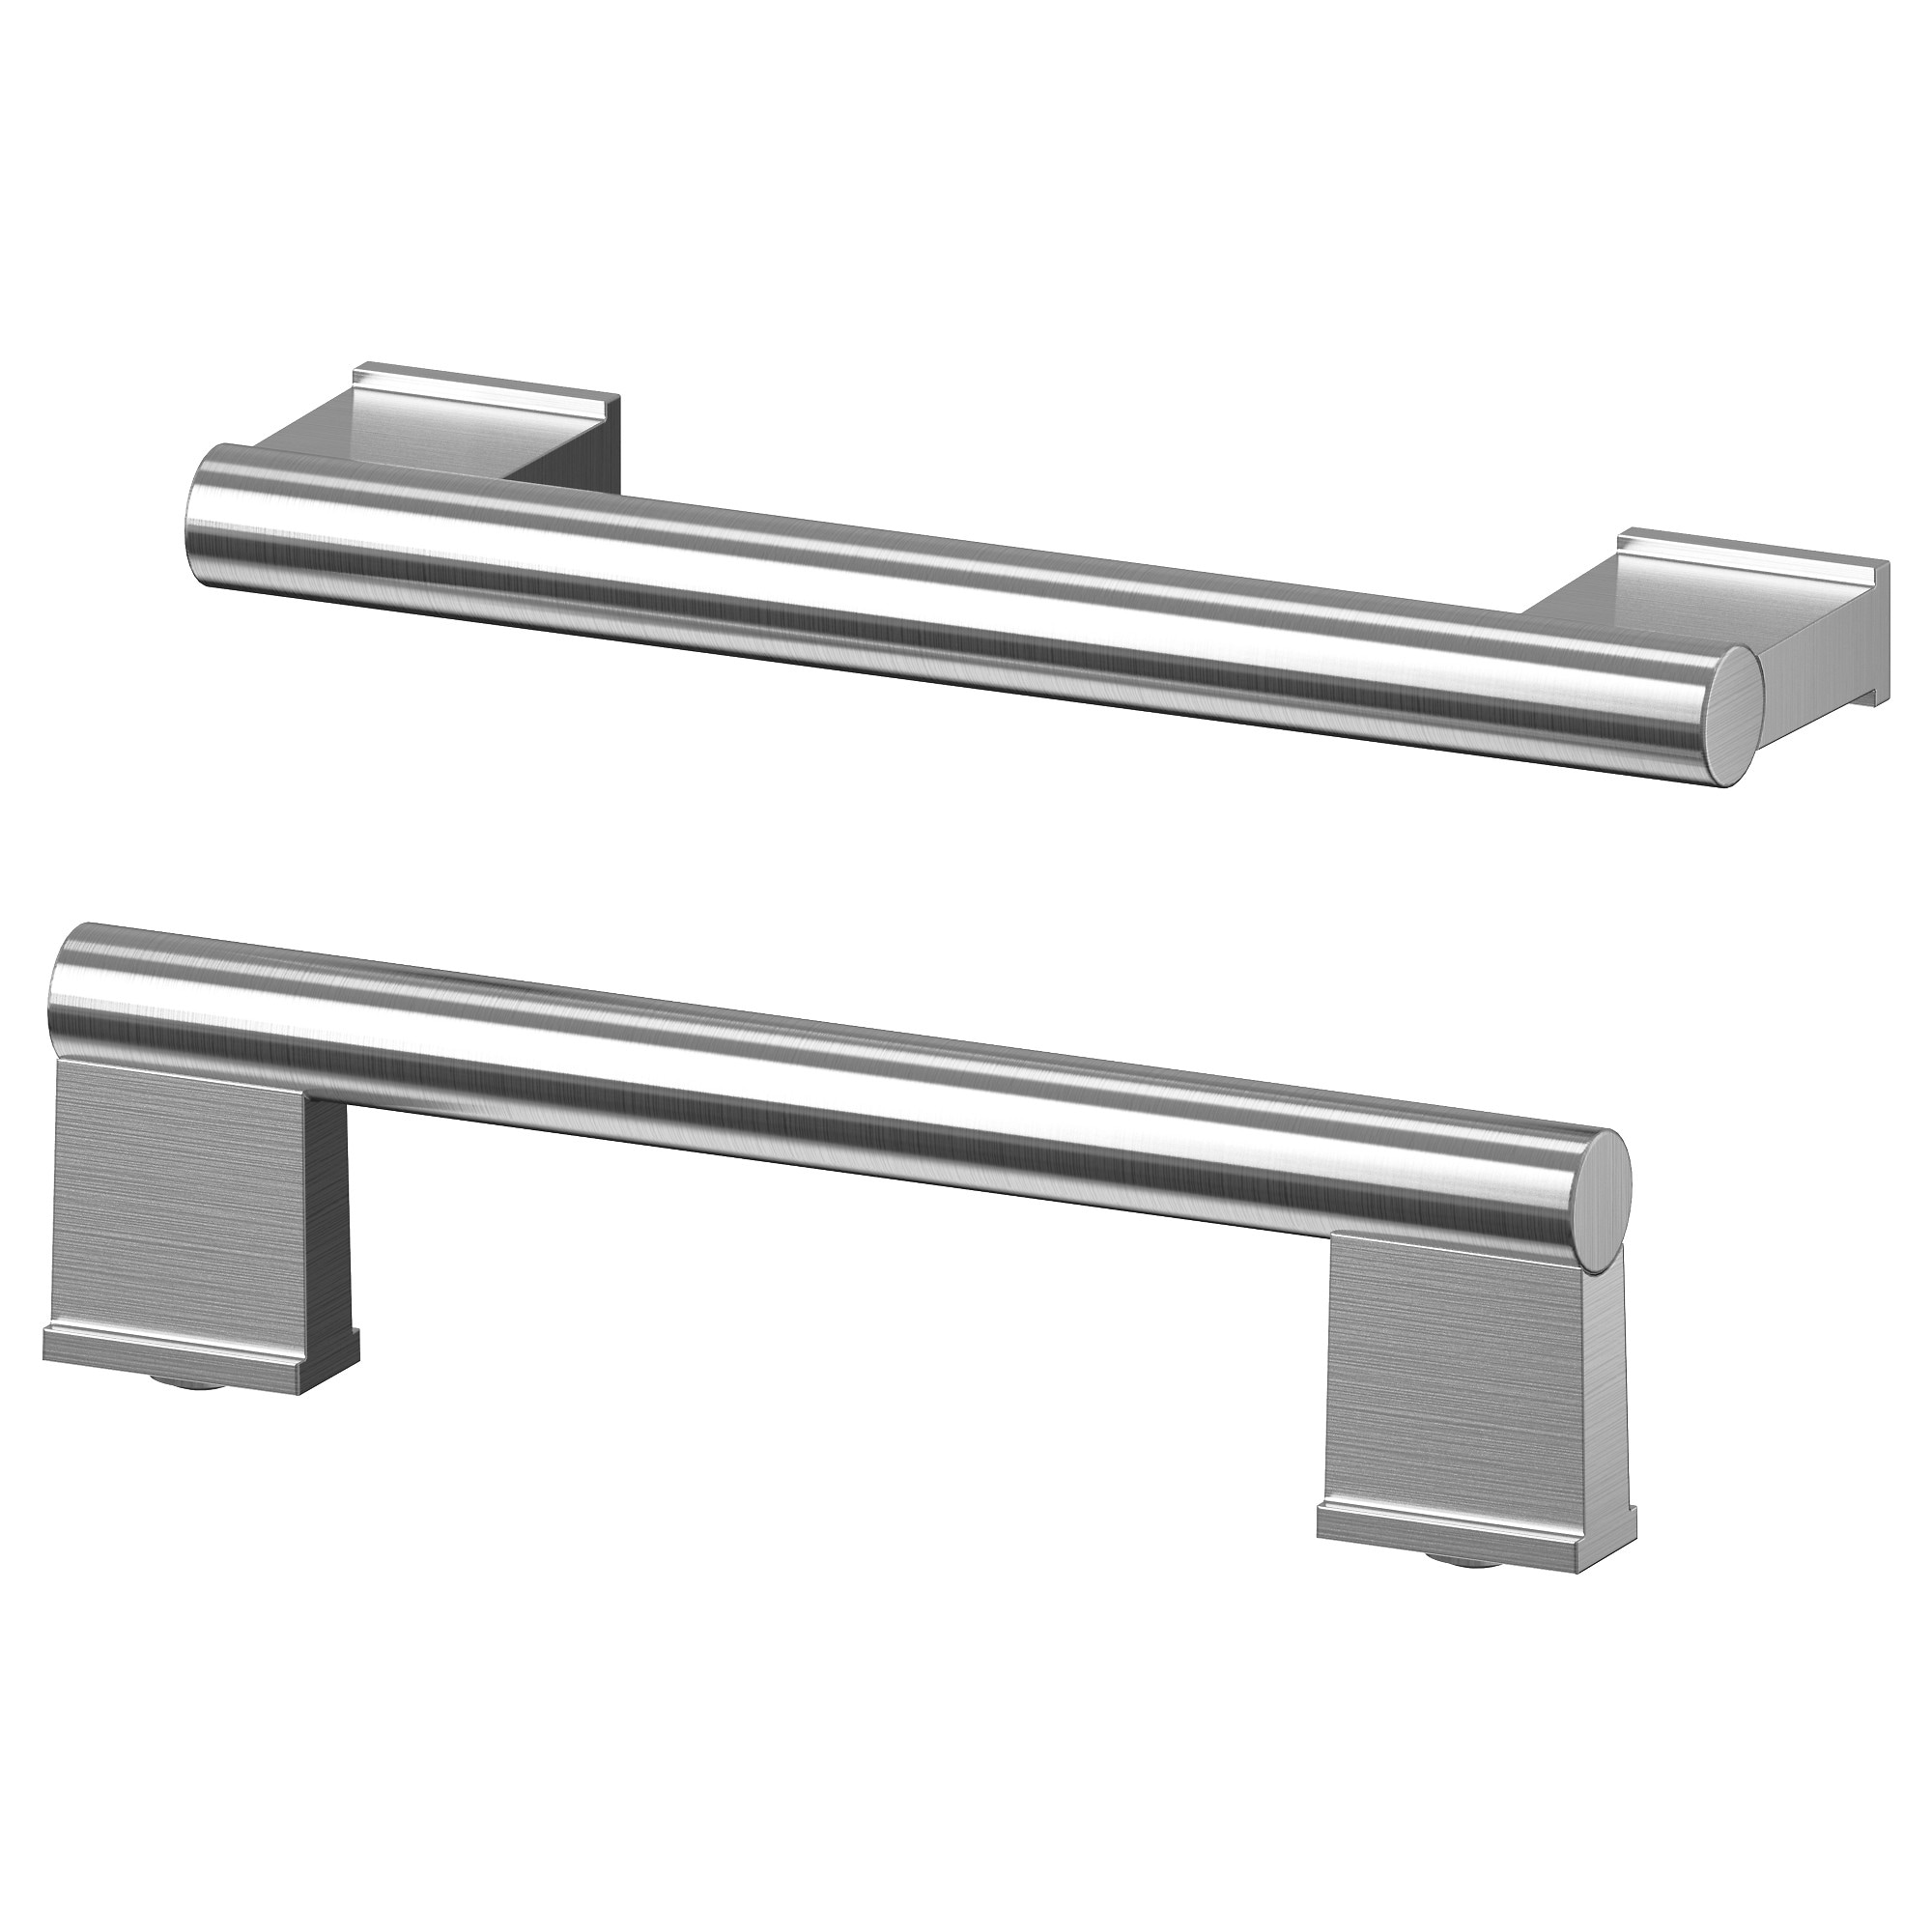 VINNA handle, stainless steel Length: 6